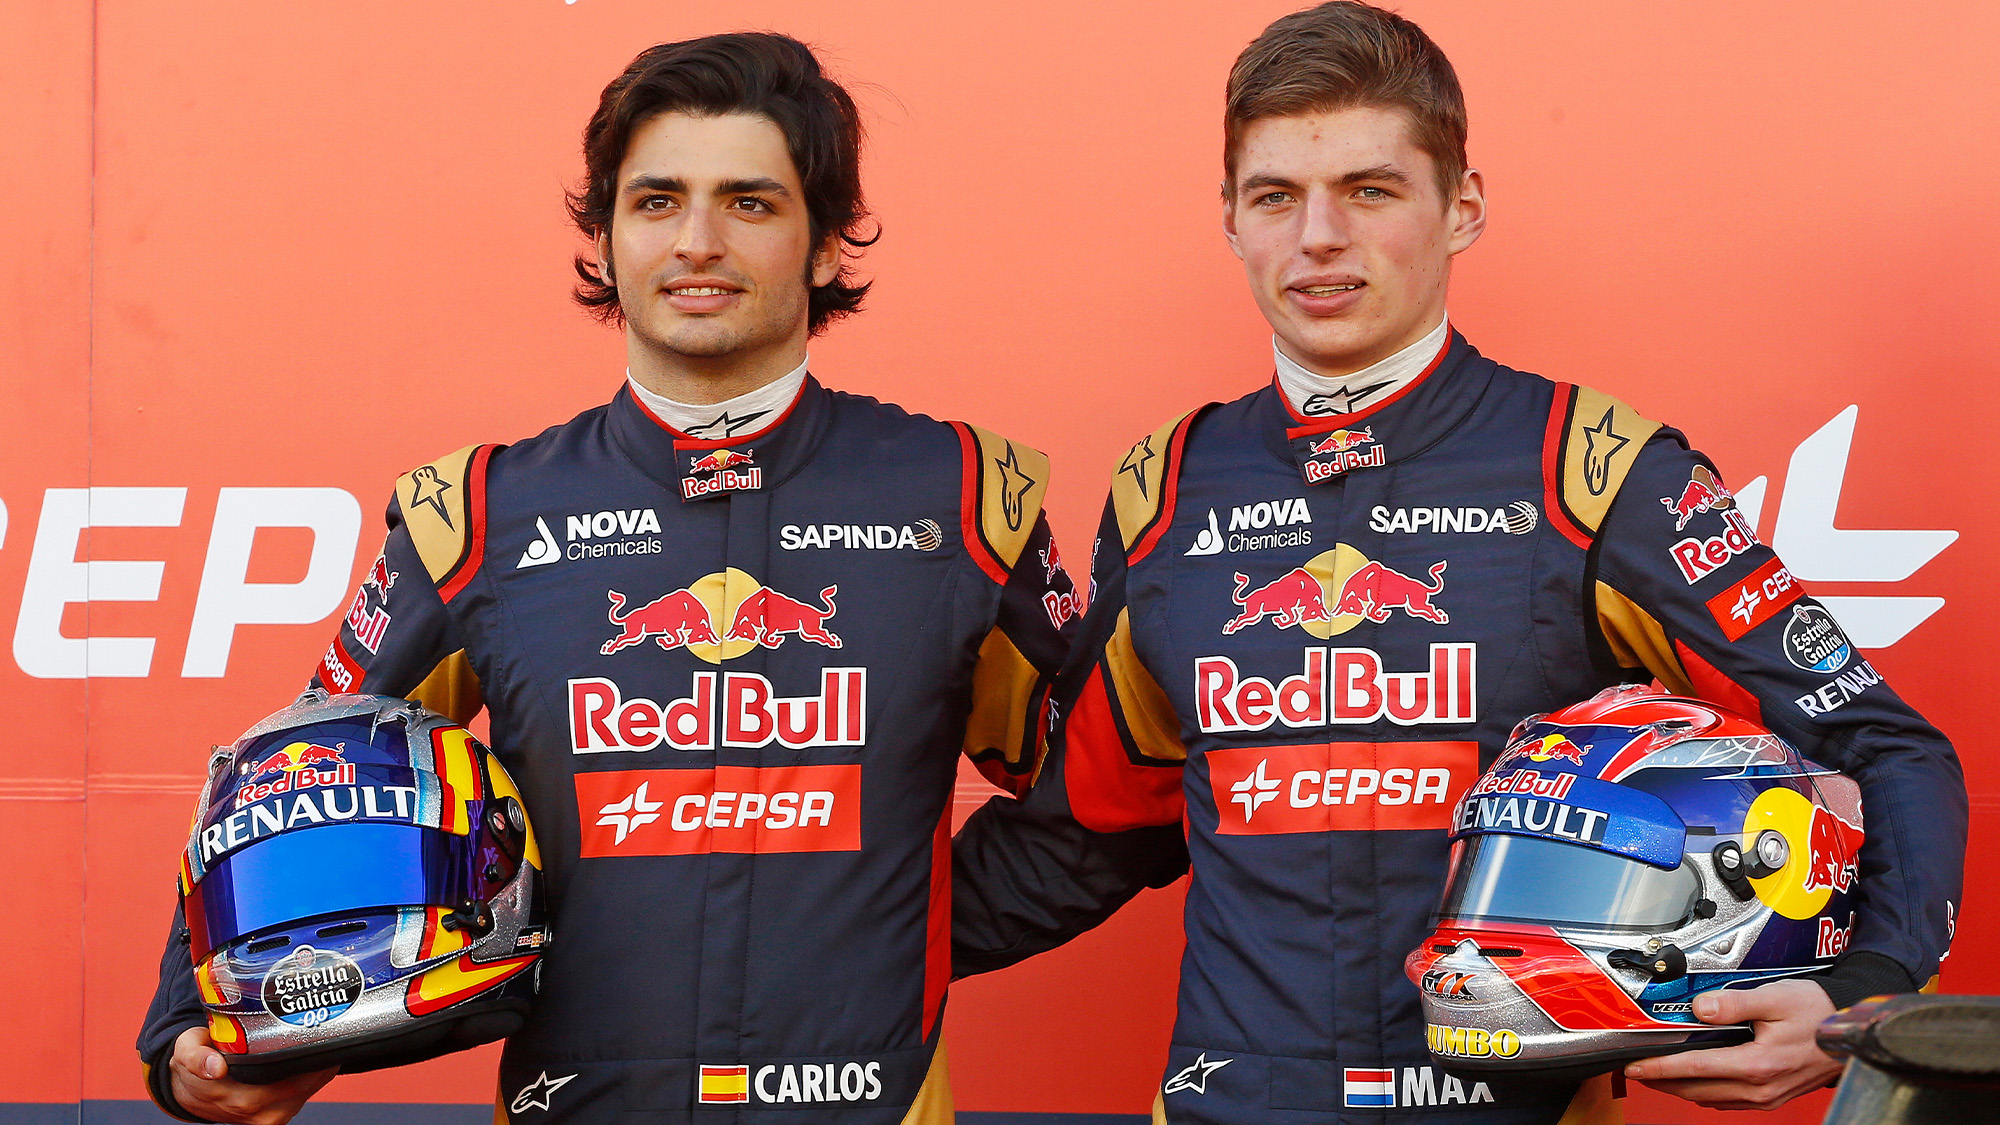 Carlos Sainz and Max Verstappen at the 2015 Toro Rosso launch